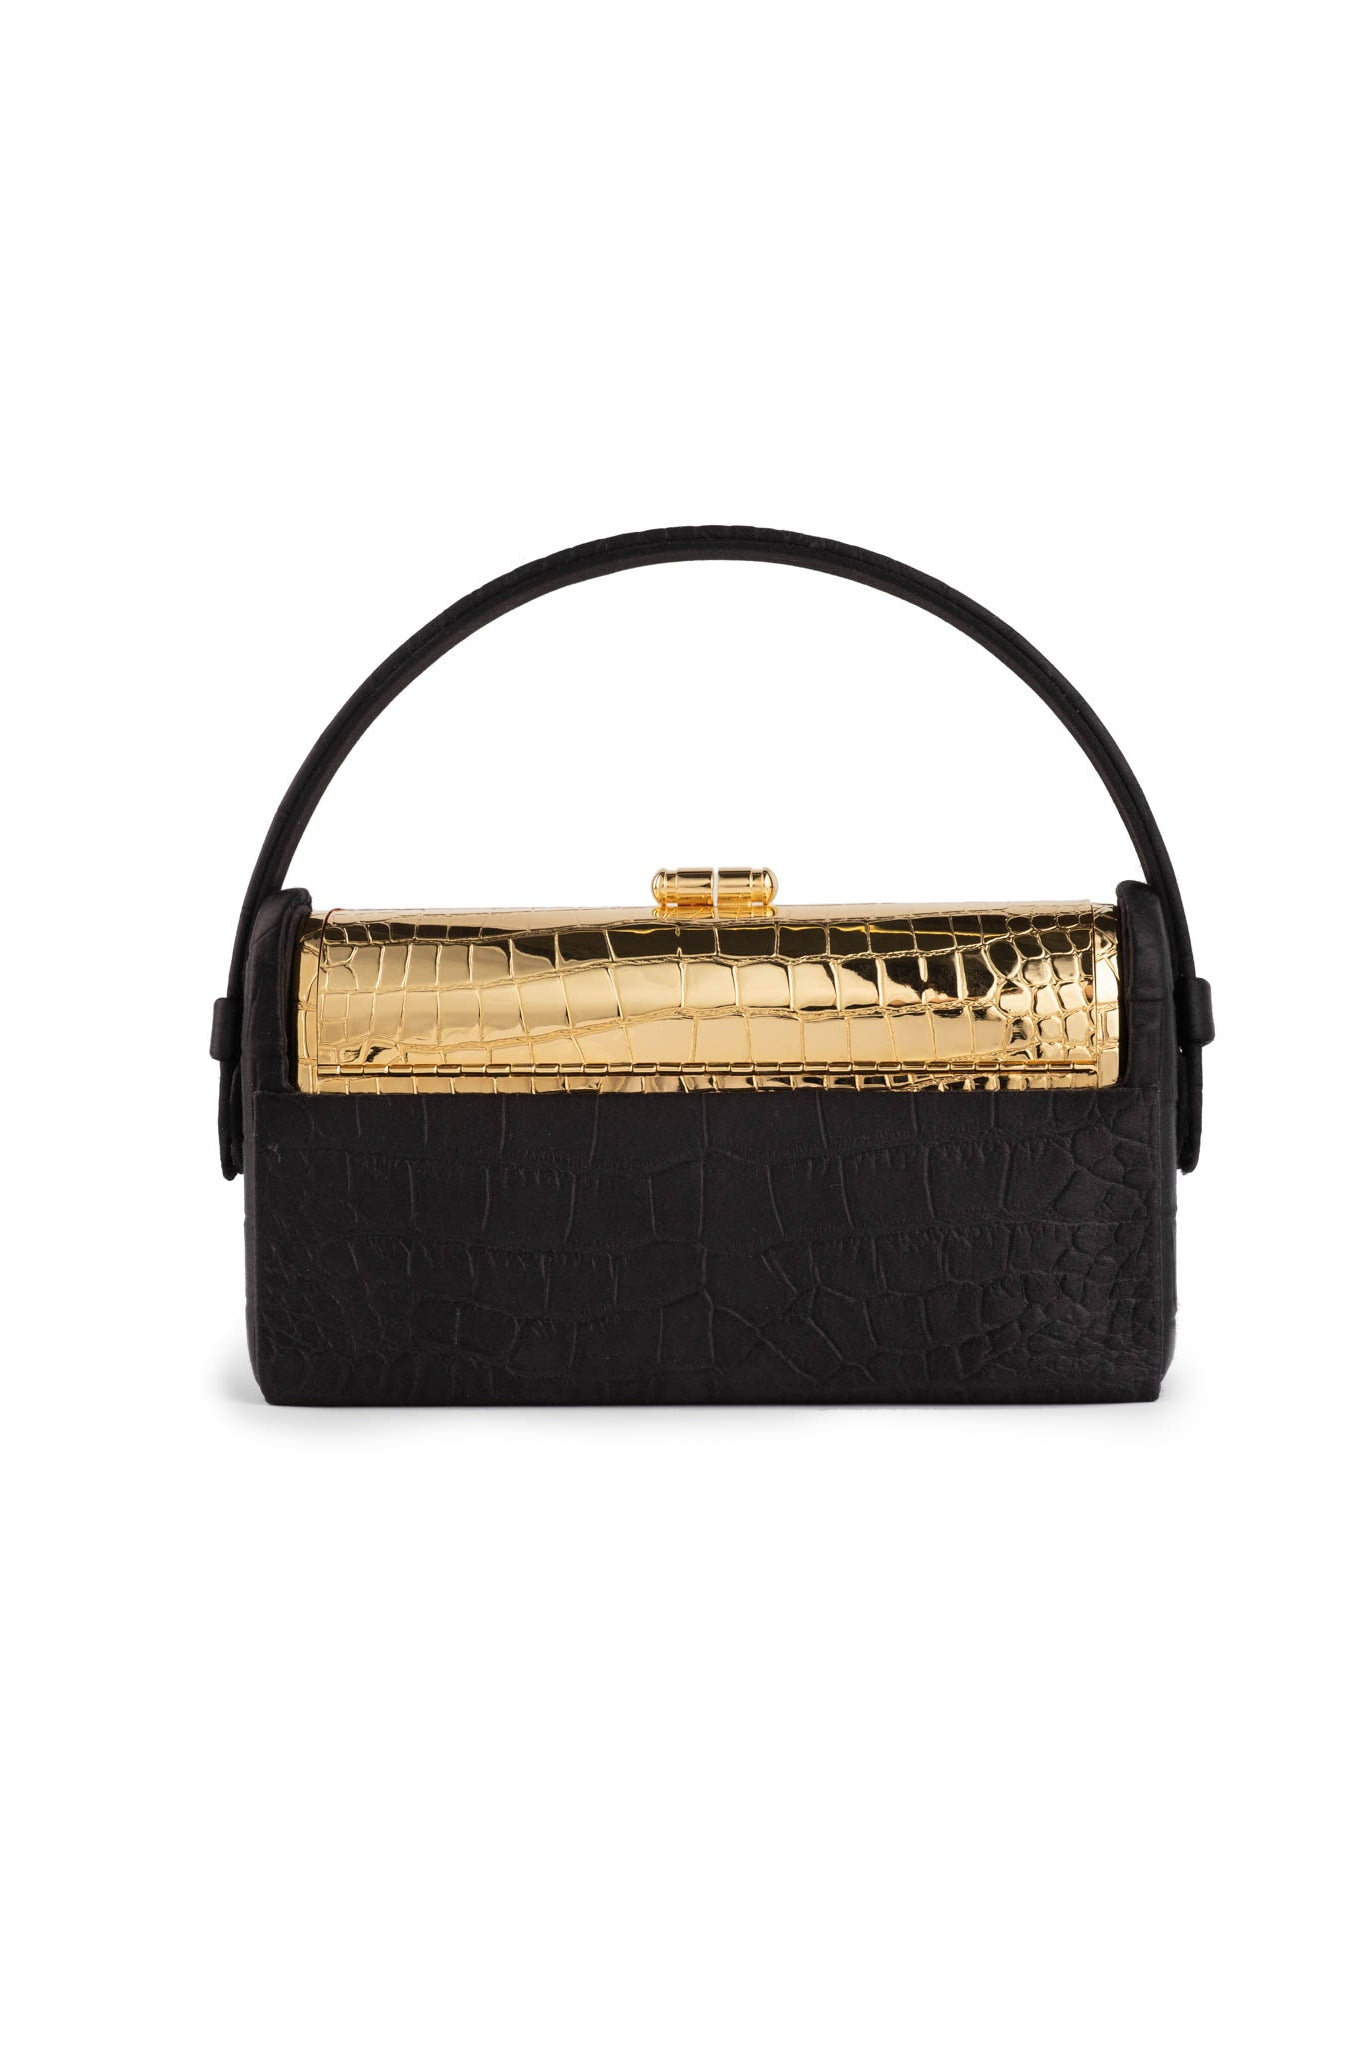 Gold Croco Stamped Régine Minaudière with Black Croco Embossed Satin Case